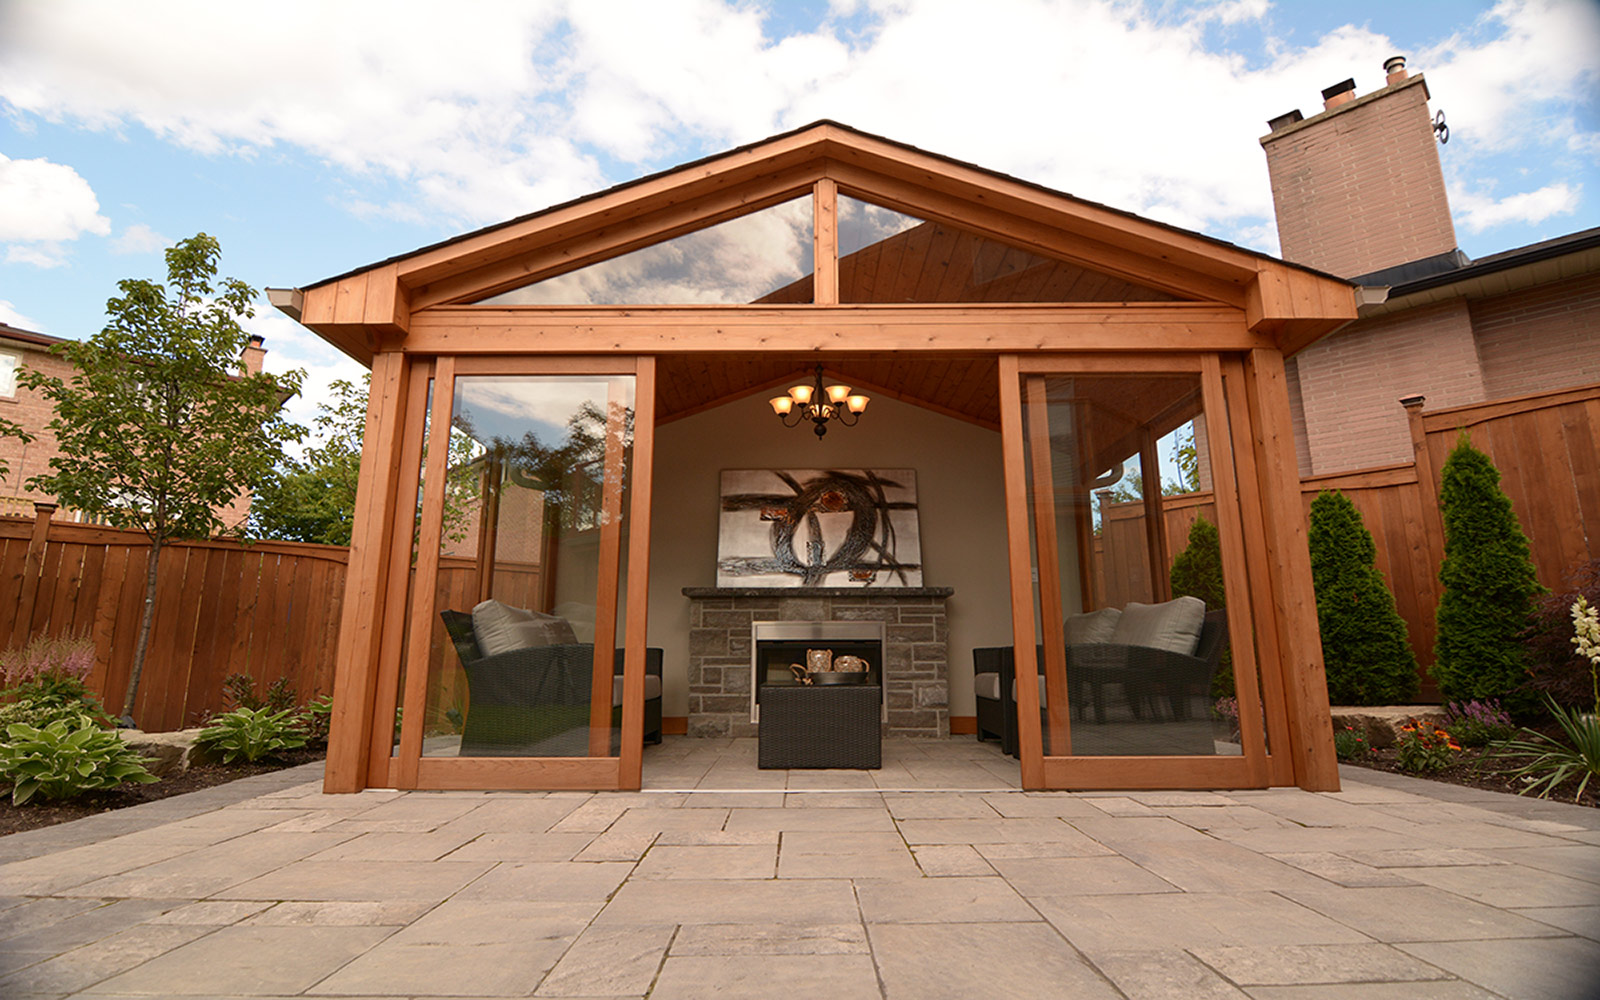 Toronto Landscaping Project; Featuring Gazebo, Interlocking, Cedar Privacy Fence & Outdoor Fireplace by The Best Toronto Landscaping Company.